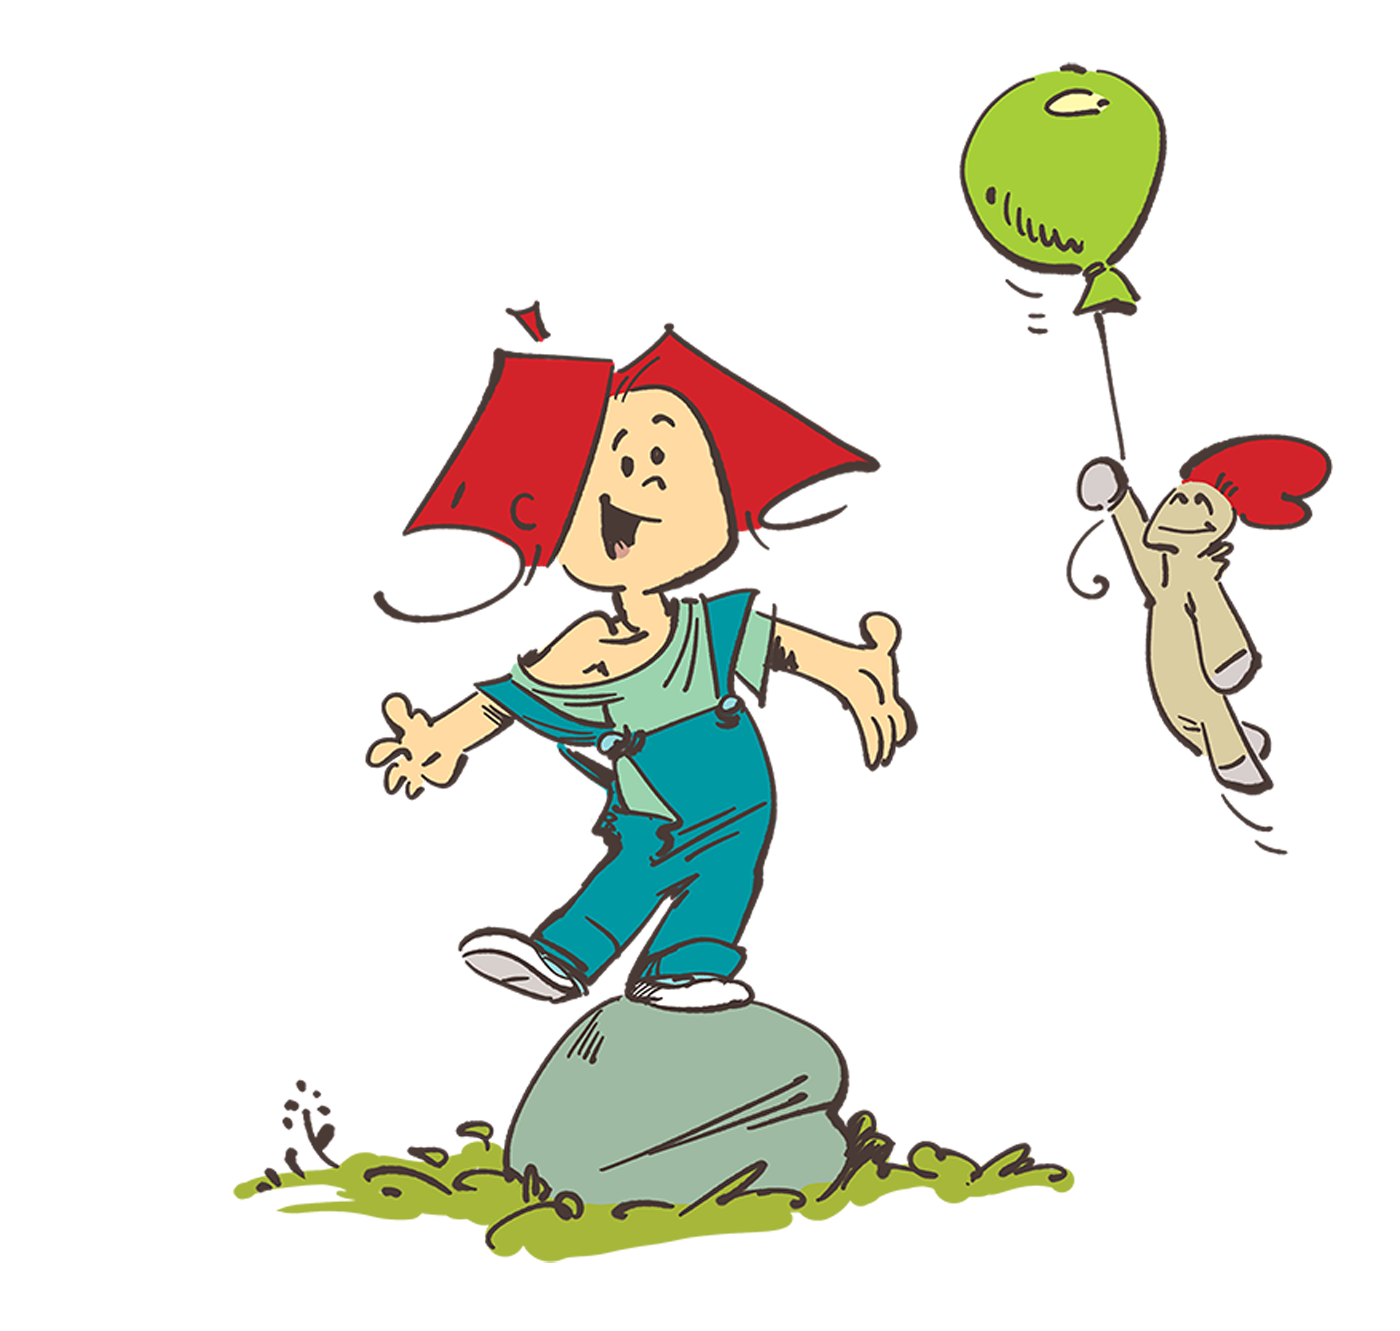 Frank and His Friend on a rock with a balloon - illustration by Cesare Asaro